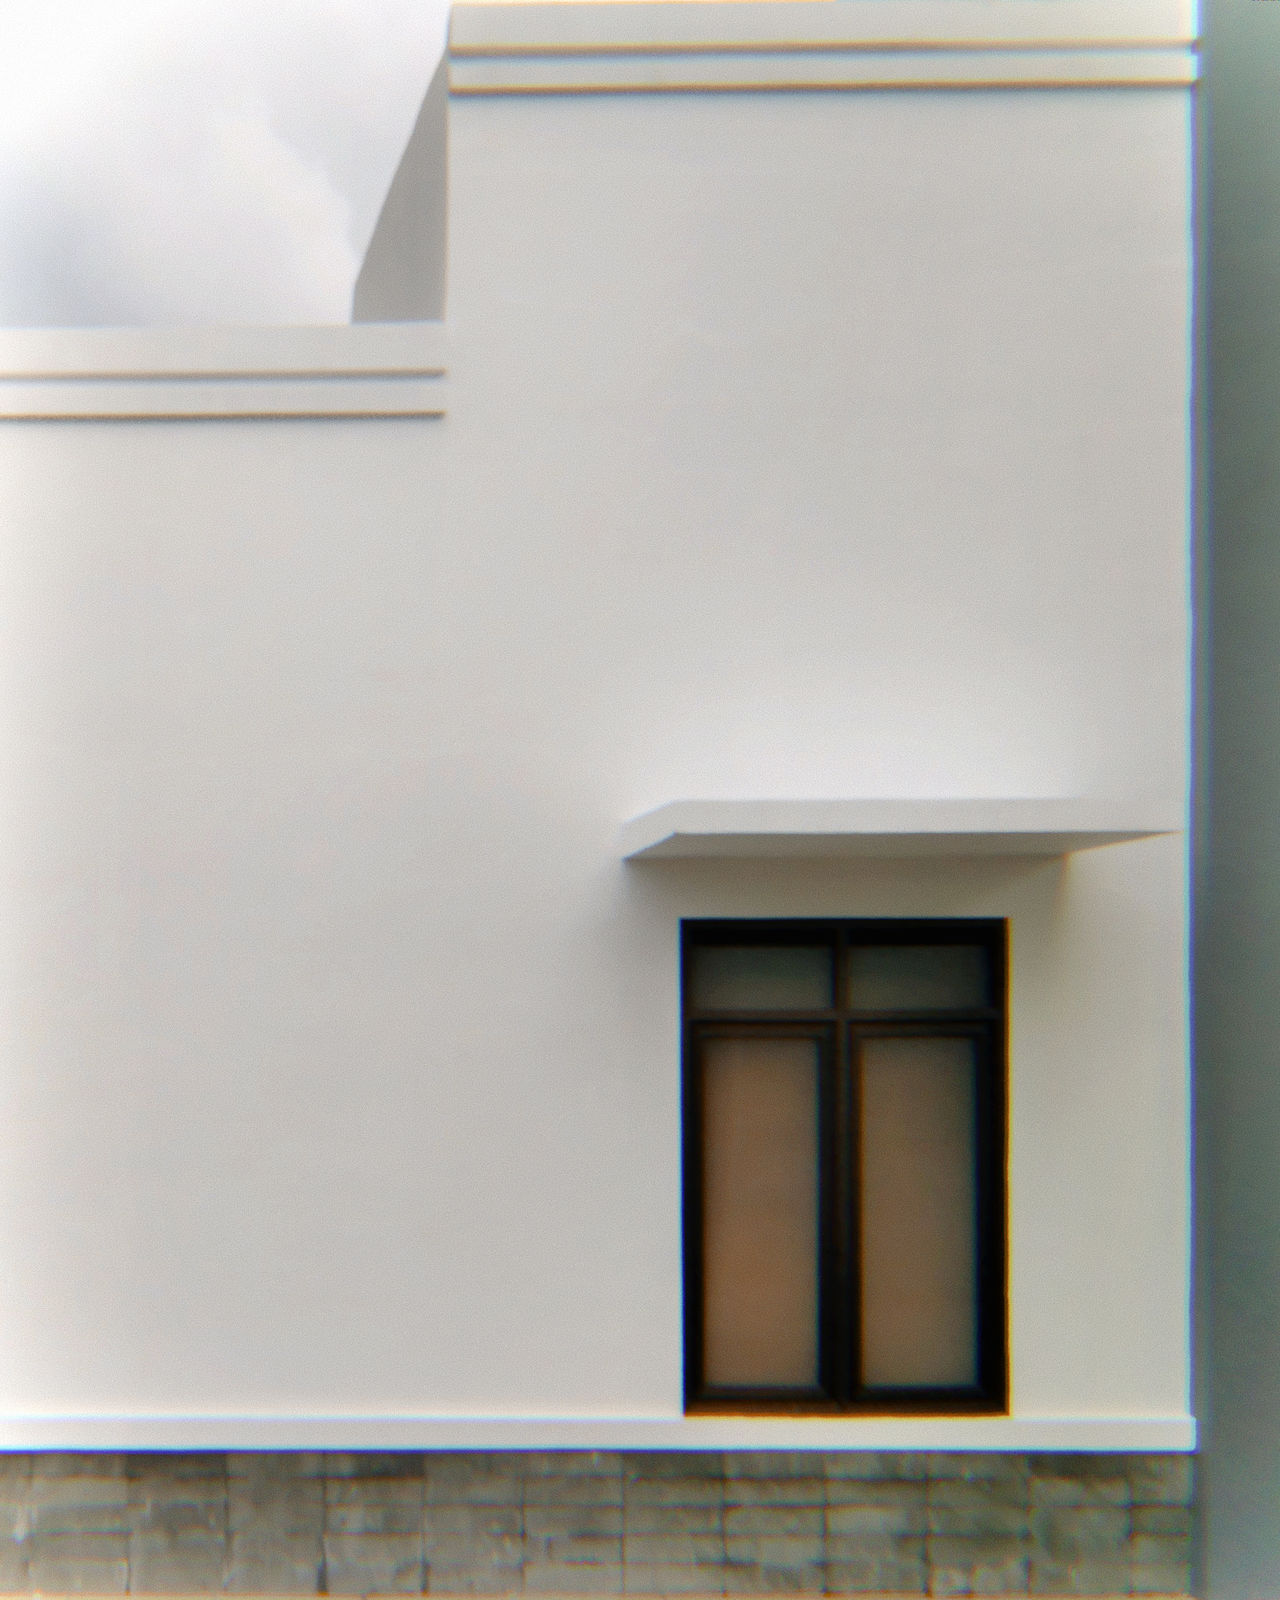 Lone window. Built Structure Architecture Close-up Outdoors